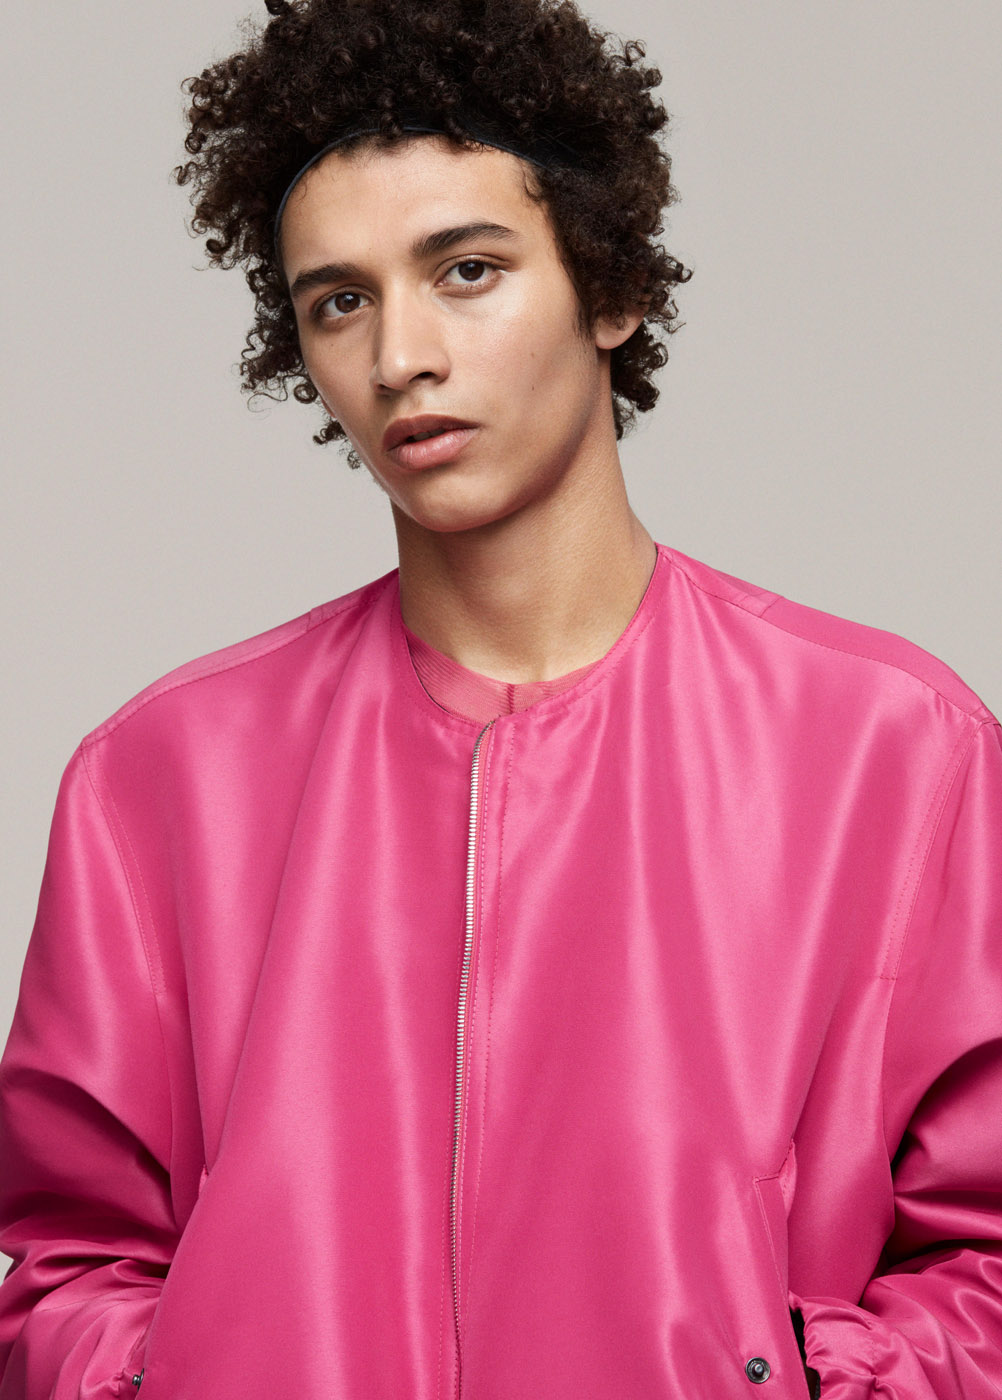 H&M Studio Spring Summer 2017 collection (22)